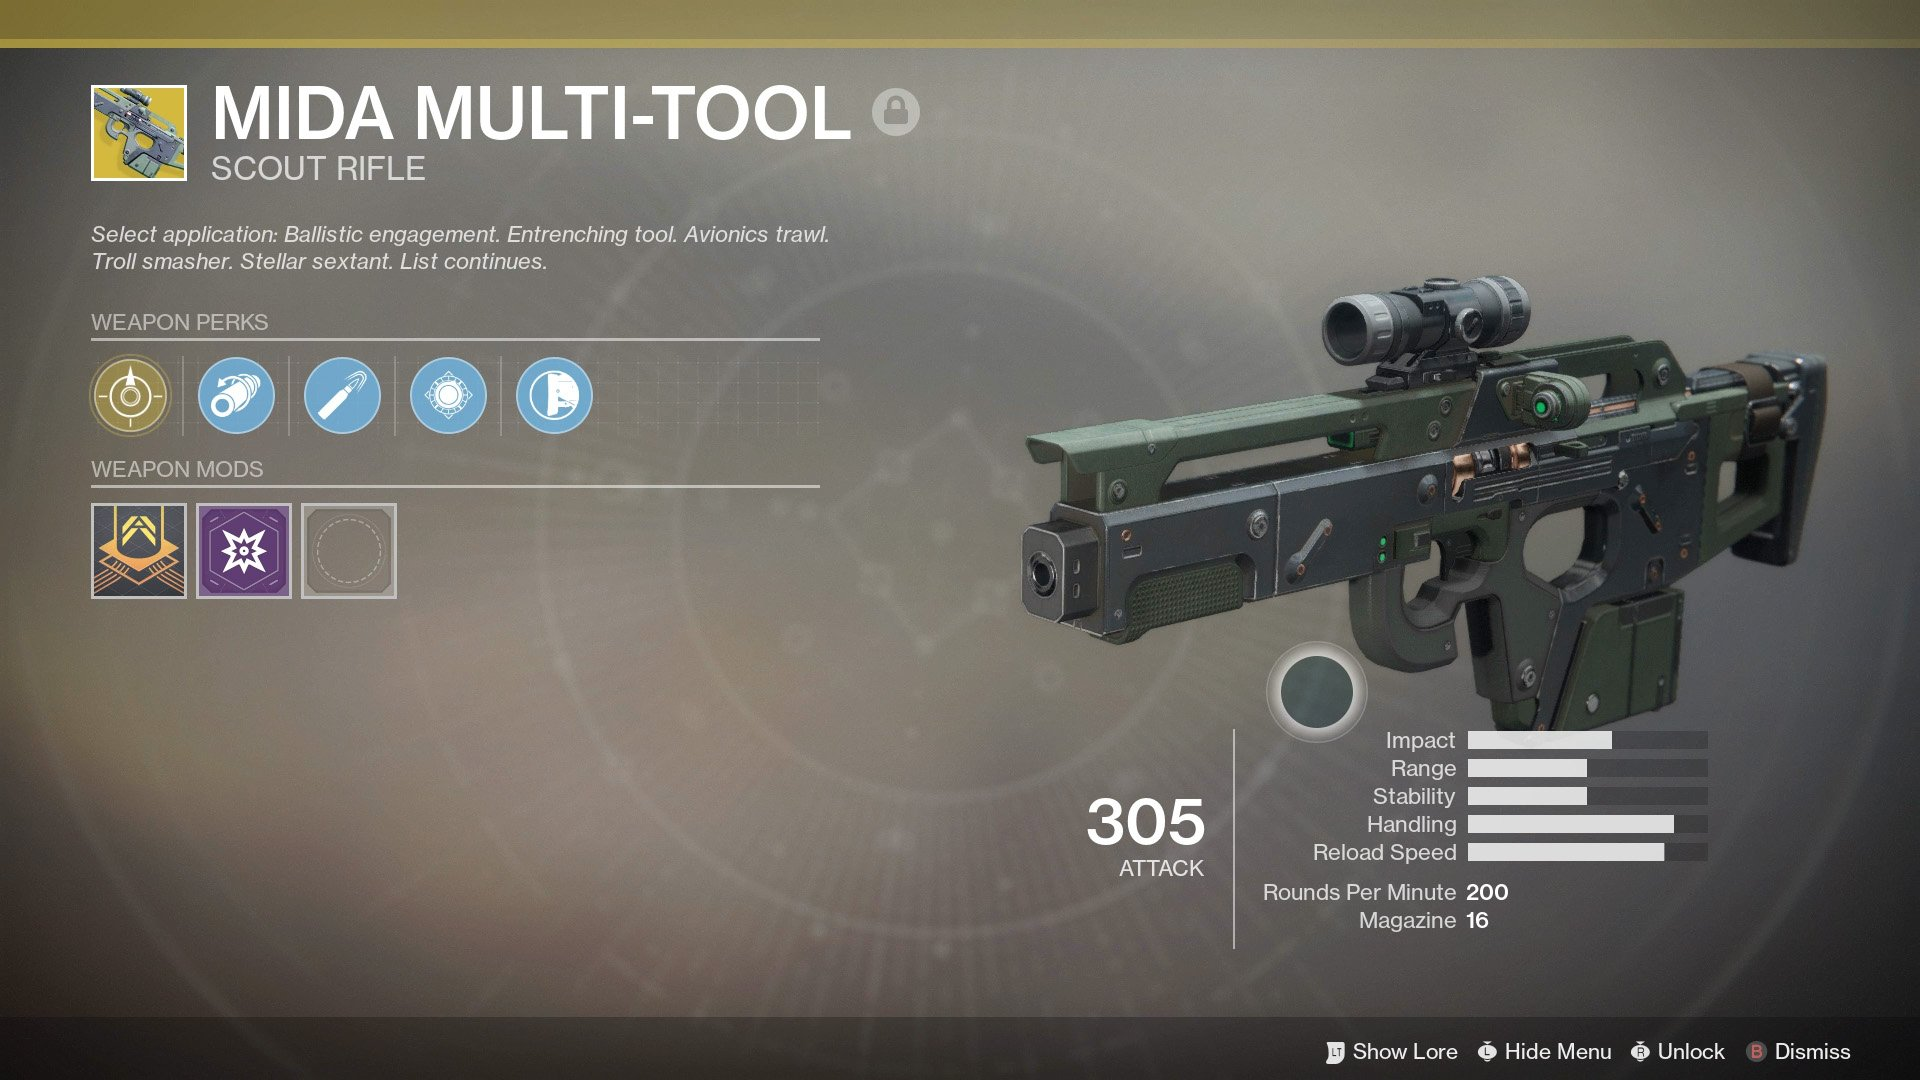 The MIDA Multi-Tool is one of the greatest weapons currently in Destiny 2. Unlocking it last is a good idea as you will want it to be as high Power as possible.